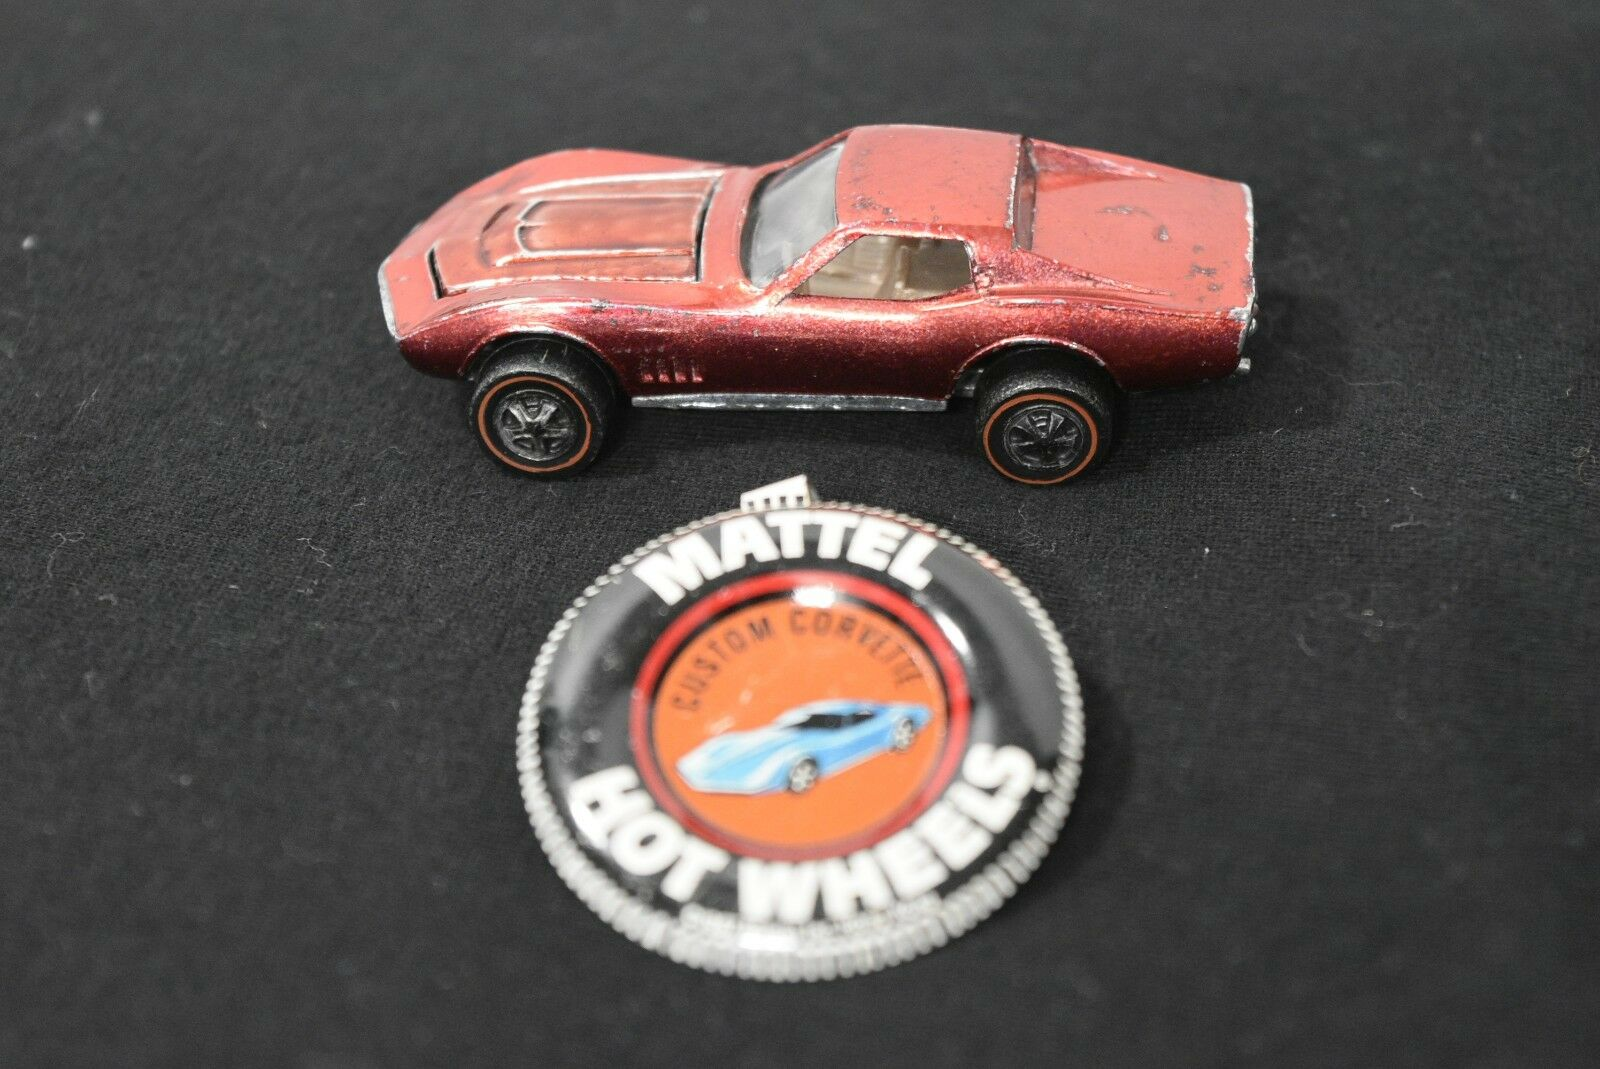 Original 1968 Hot Wheels Redline Custom Corvette in red with Button